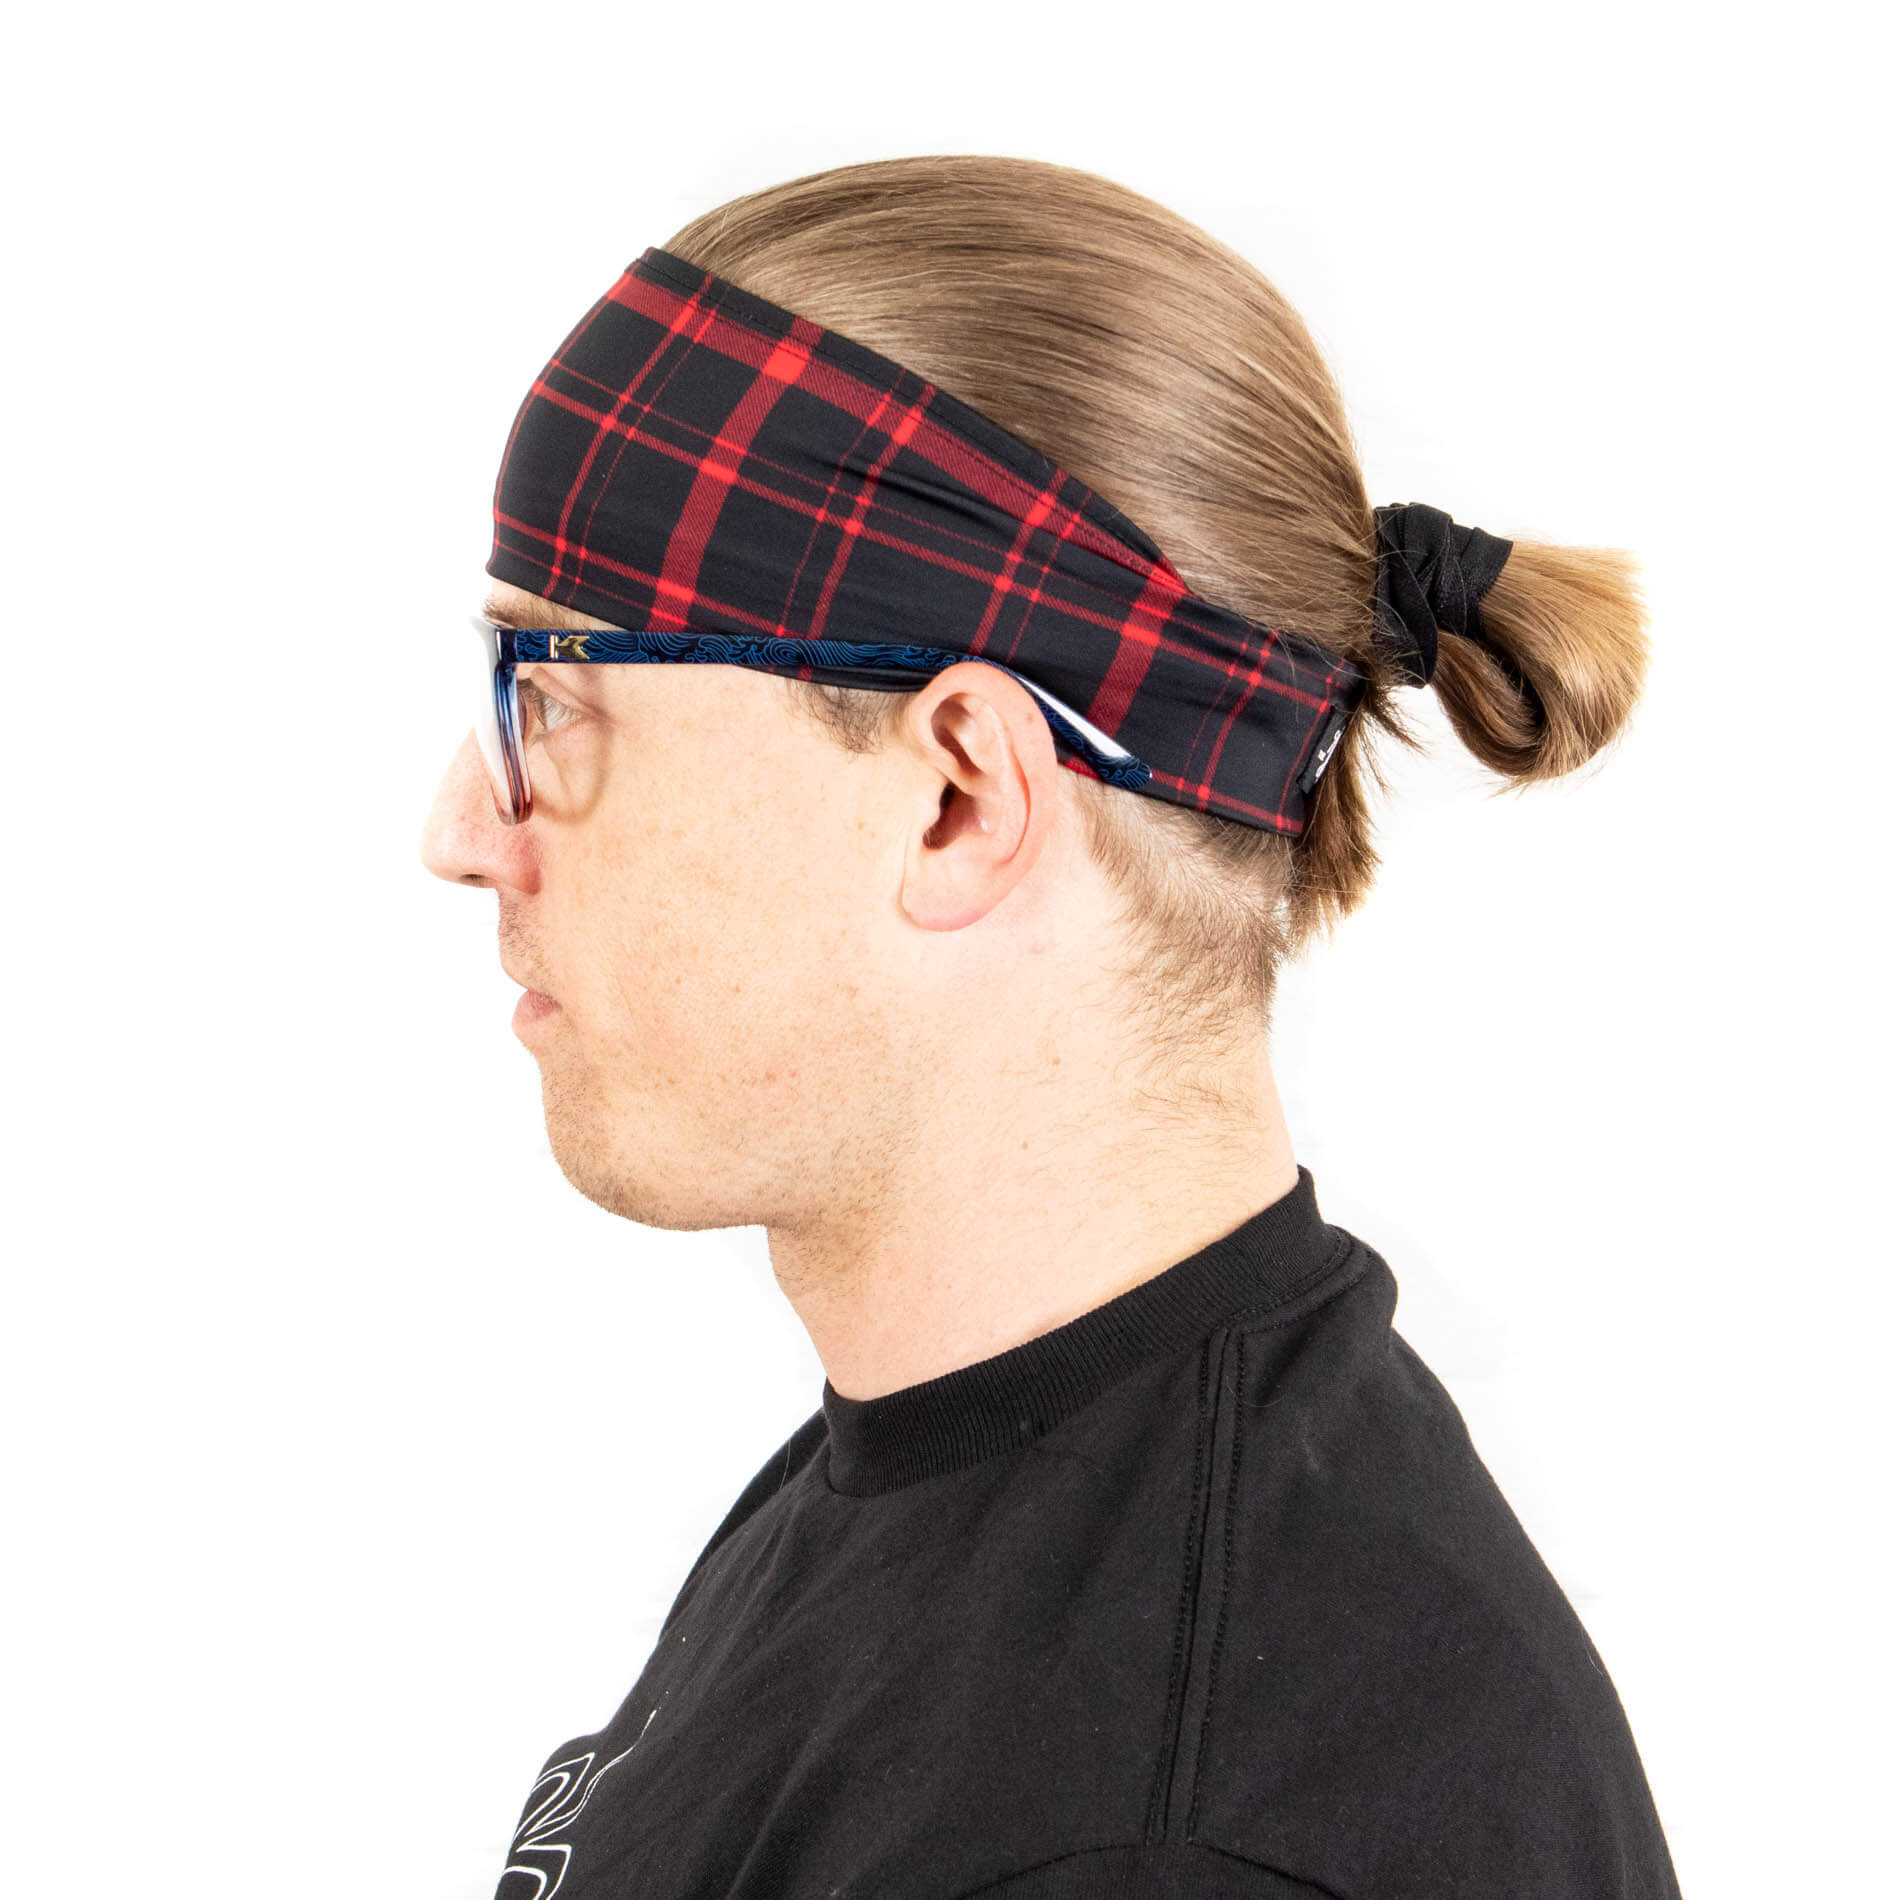 The Lumberman headband from The Longhairs under a man bun with knockaround sunglasses on.